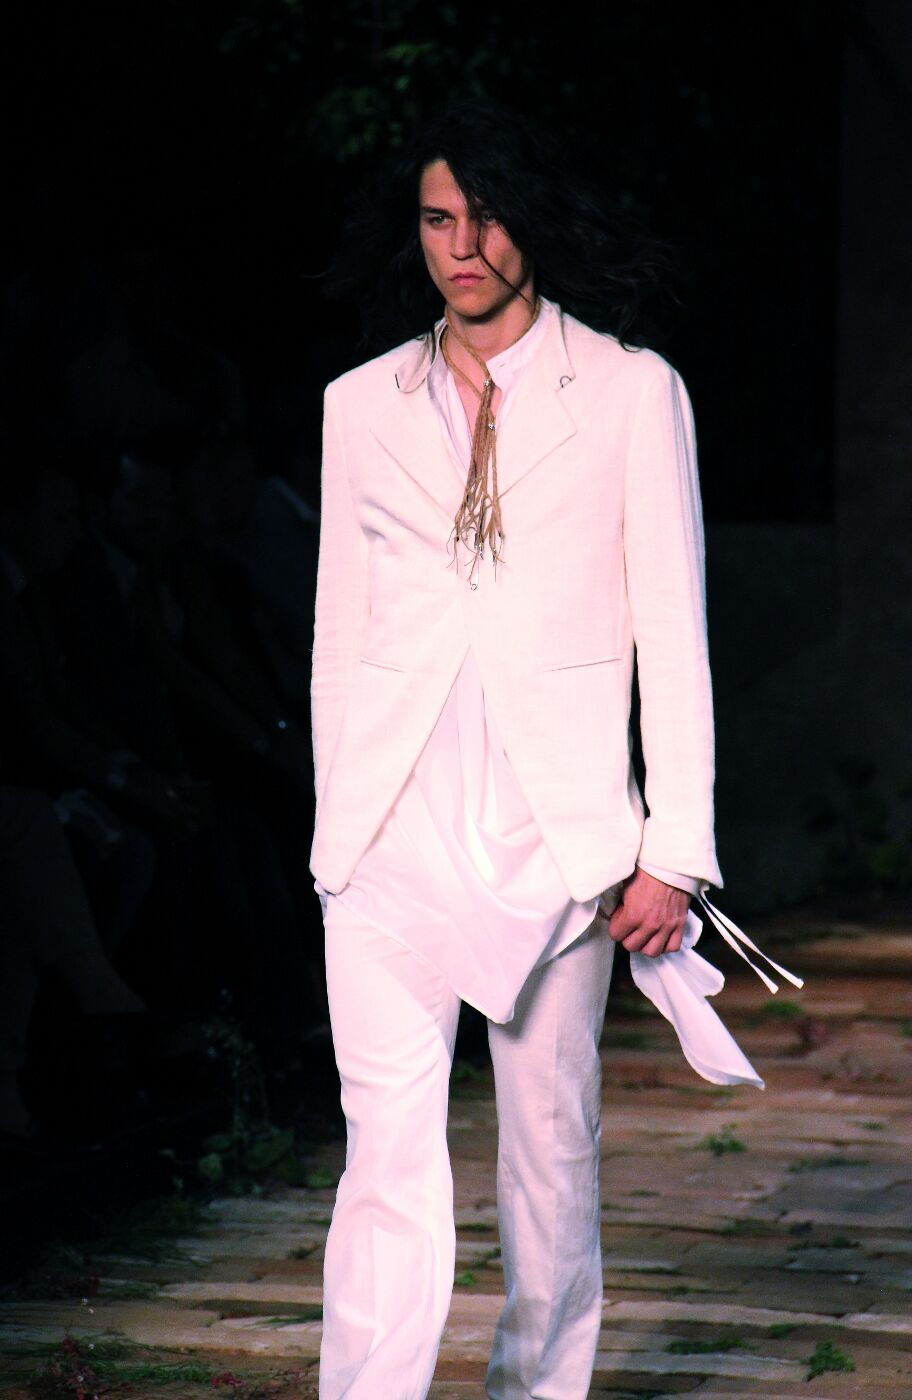 ss-john-varvatos-2012-ss-spring-summer-2012-milano-fashion-week